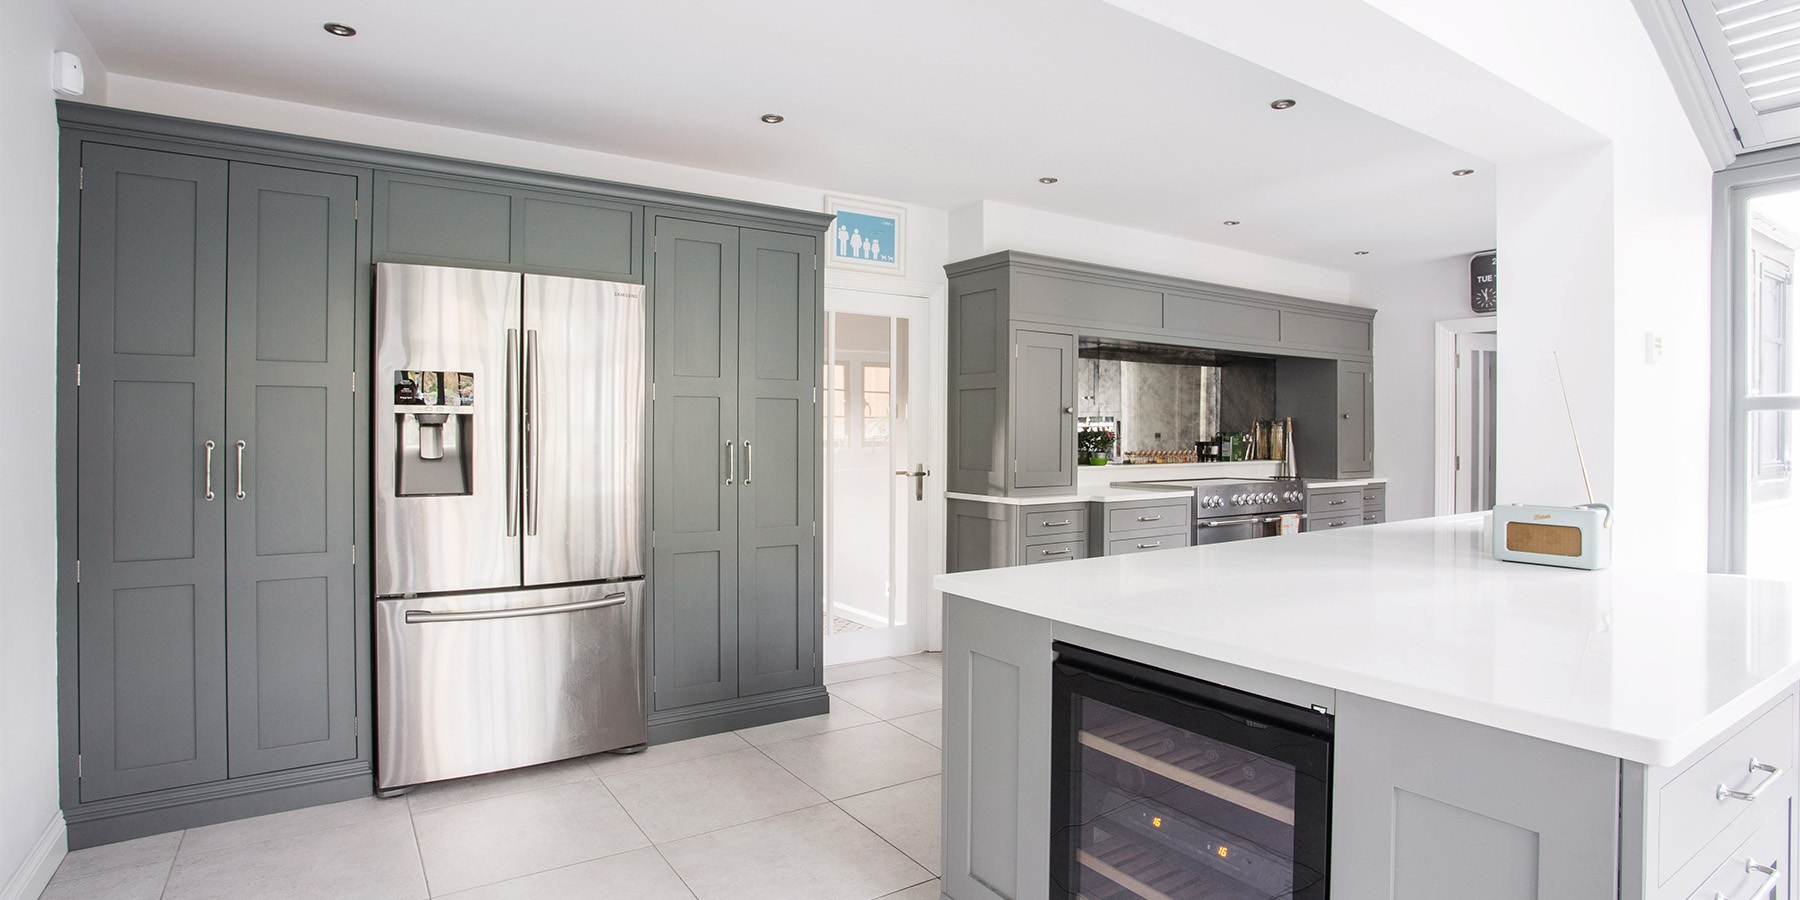 Luxury Open Plan Family Kitchen - Burlanes classic Hoyden kitchen with beautiful big larder units and kitchen island, perfect for entertaining.